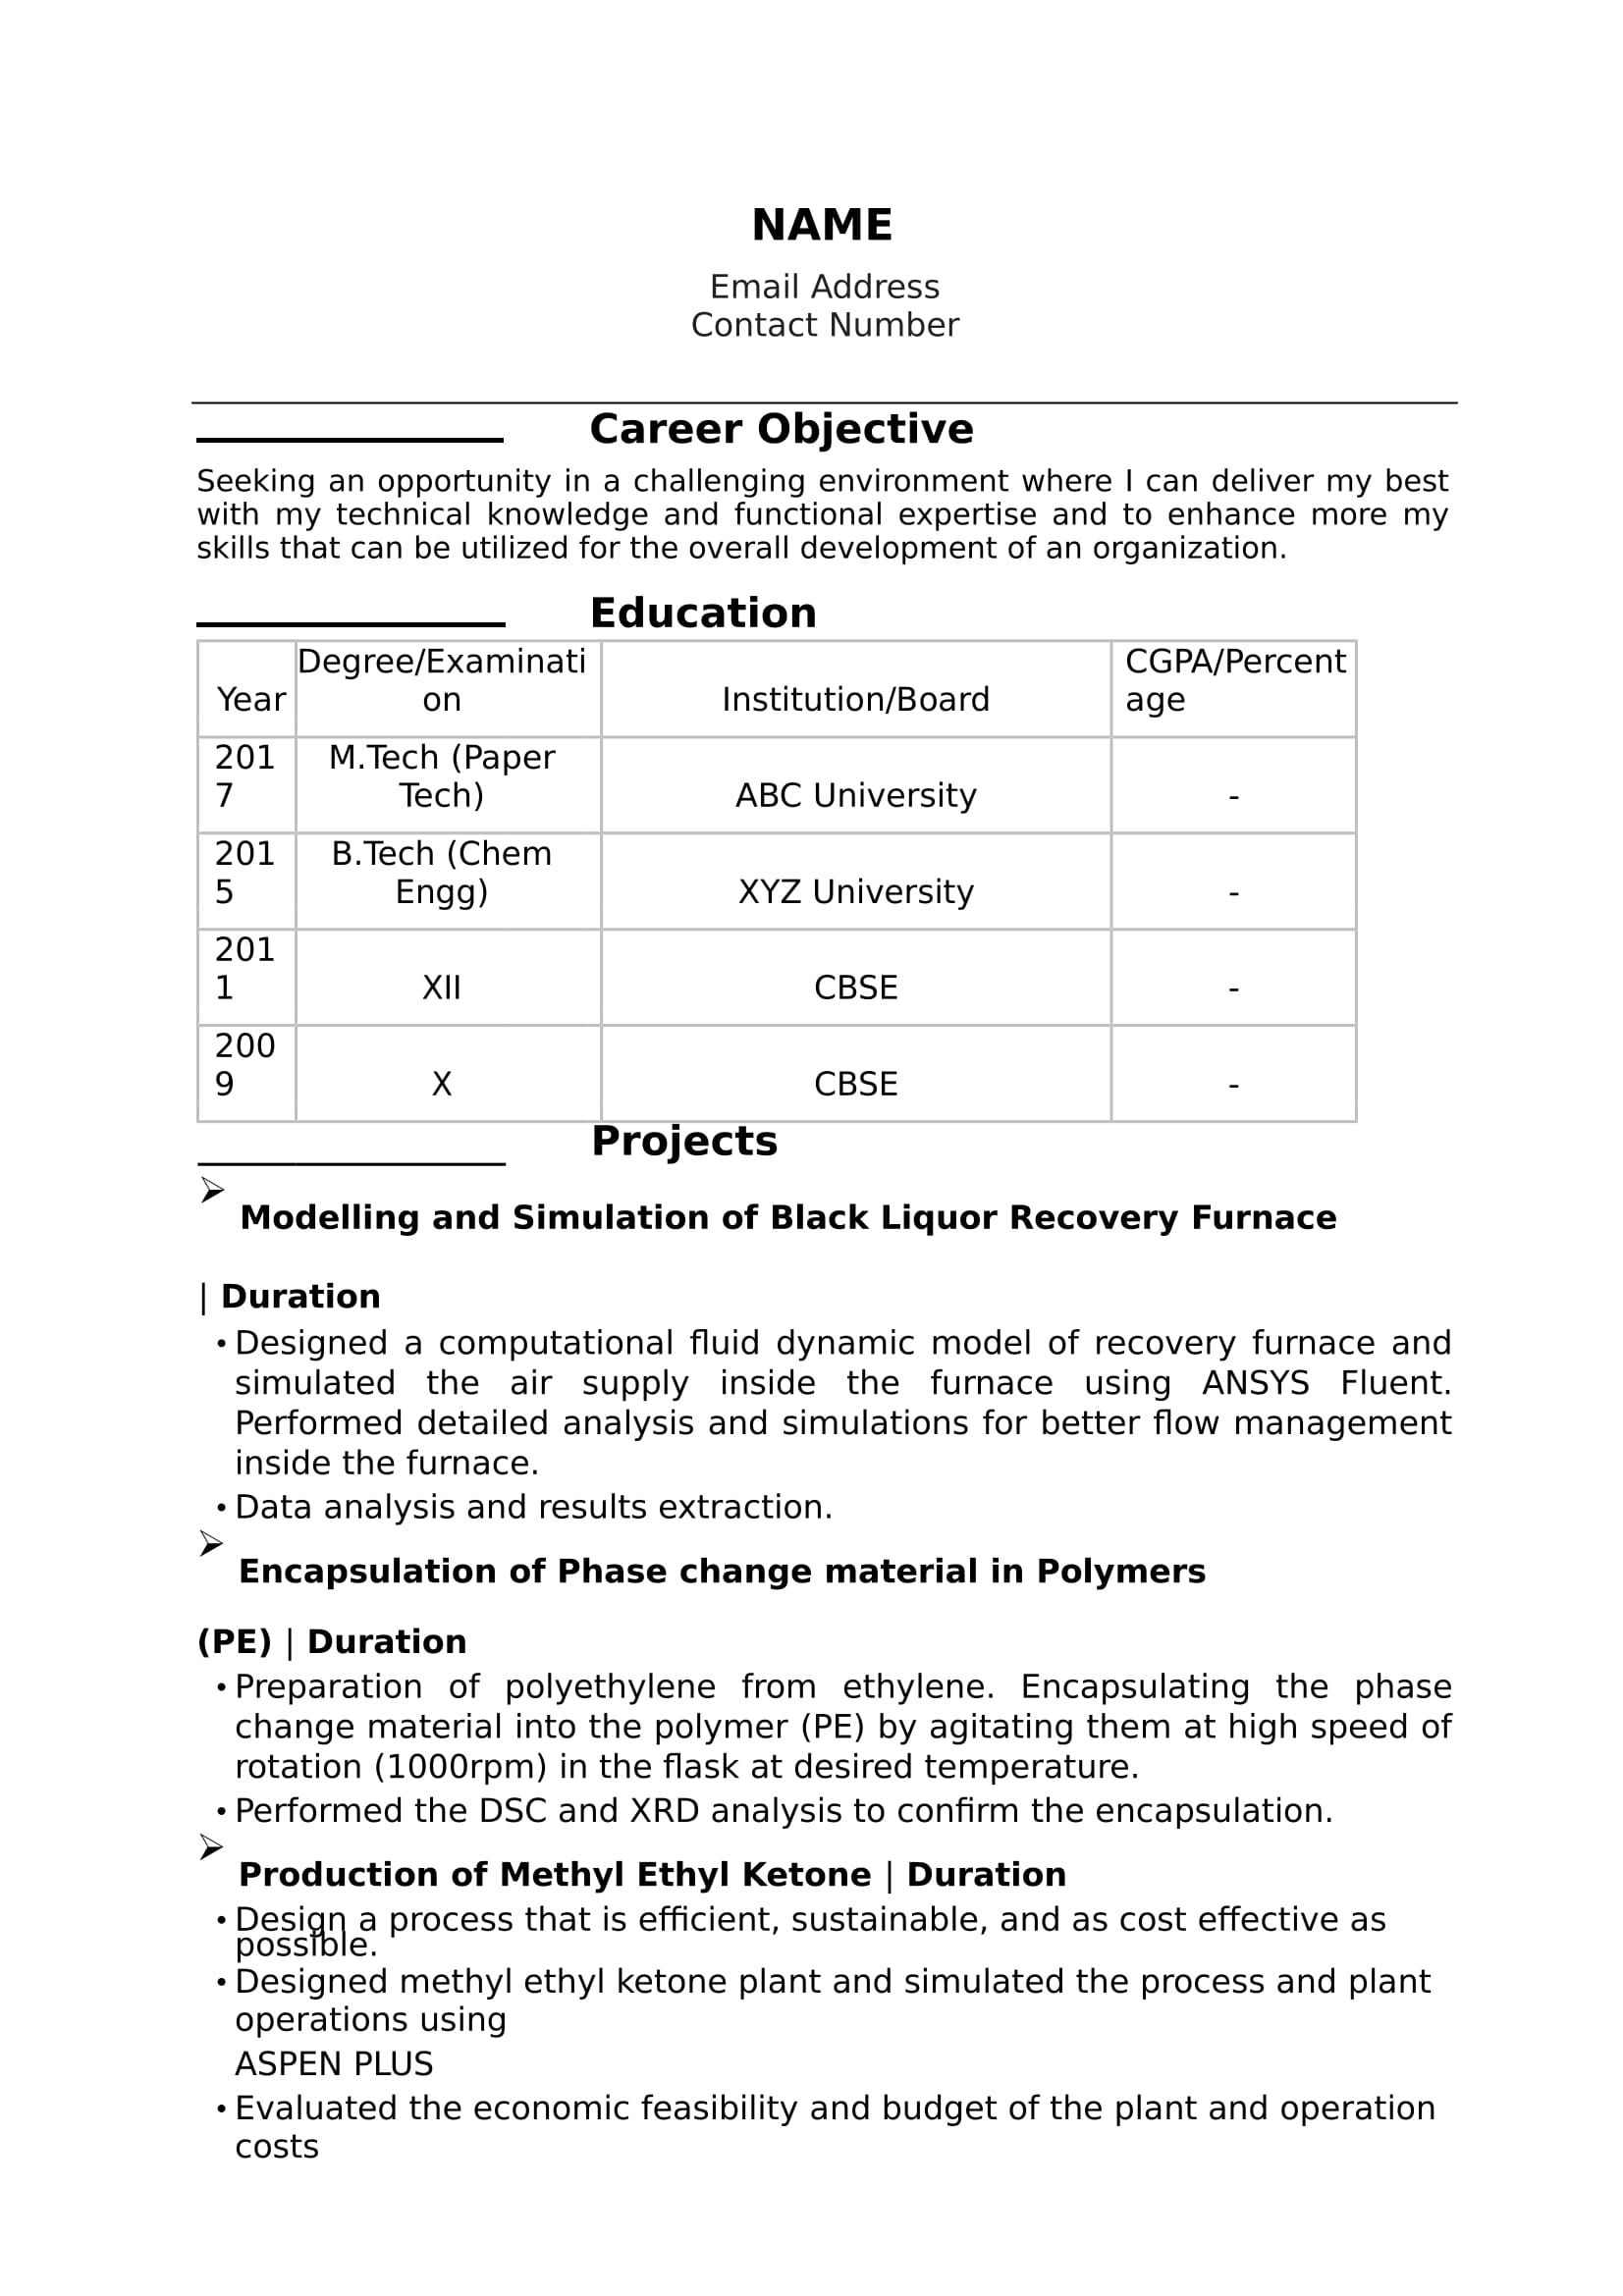 Resume Download Free Word Format 32 43 Resume Templates For Freshers Download Free Word Format